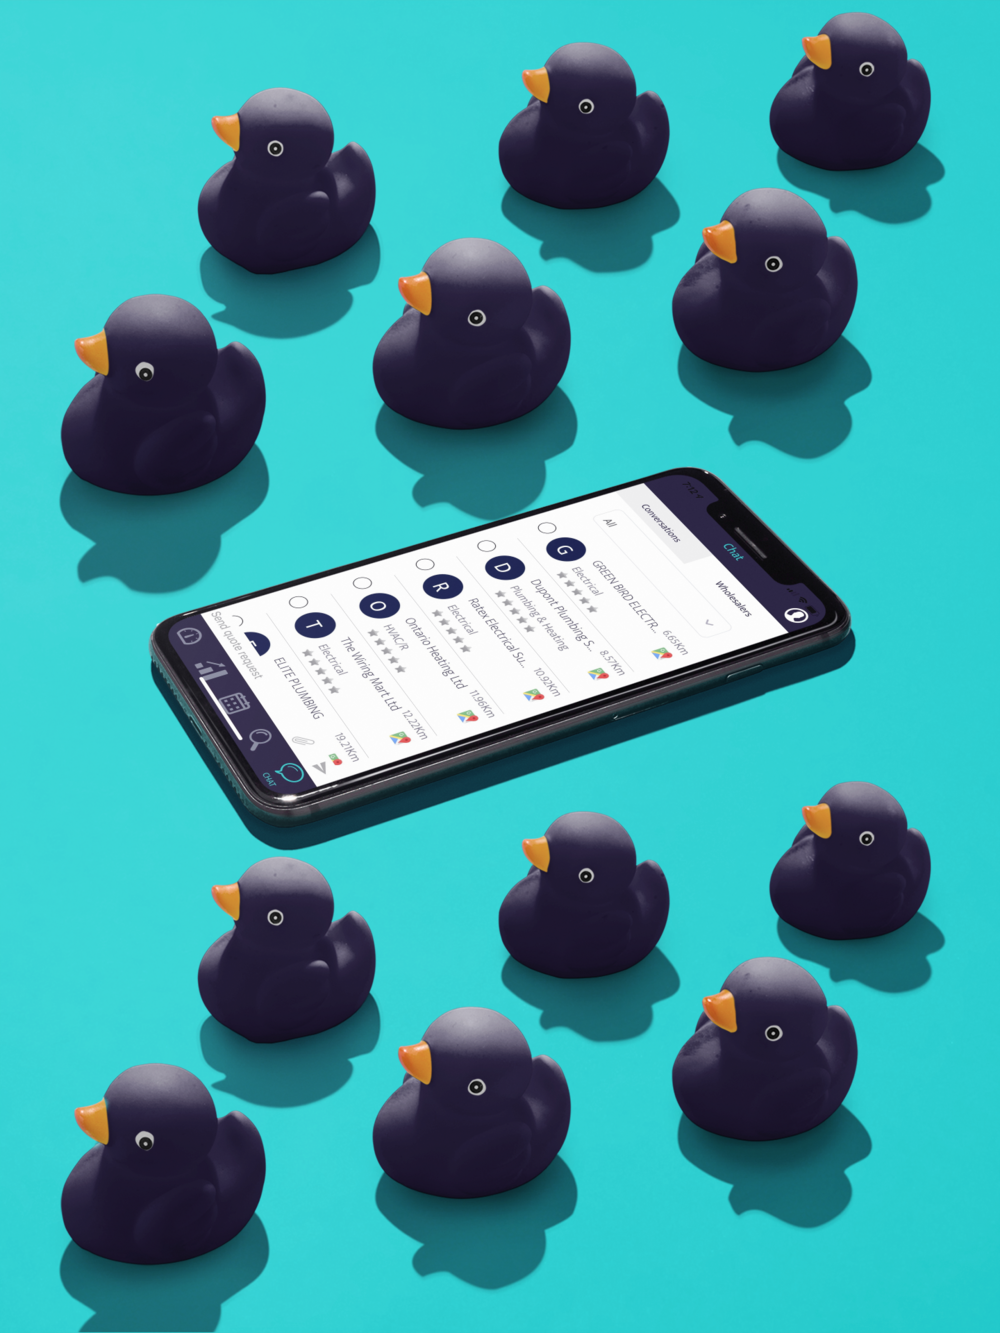 iphone-x-mockup-lying-near-rubber-ducks-a19185.png